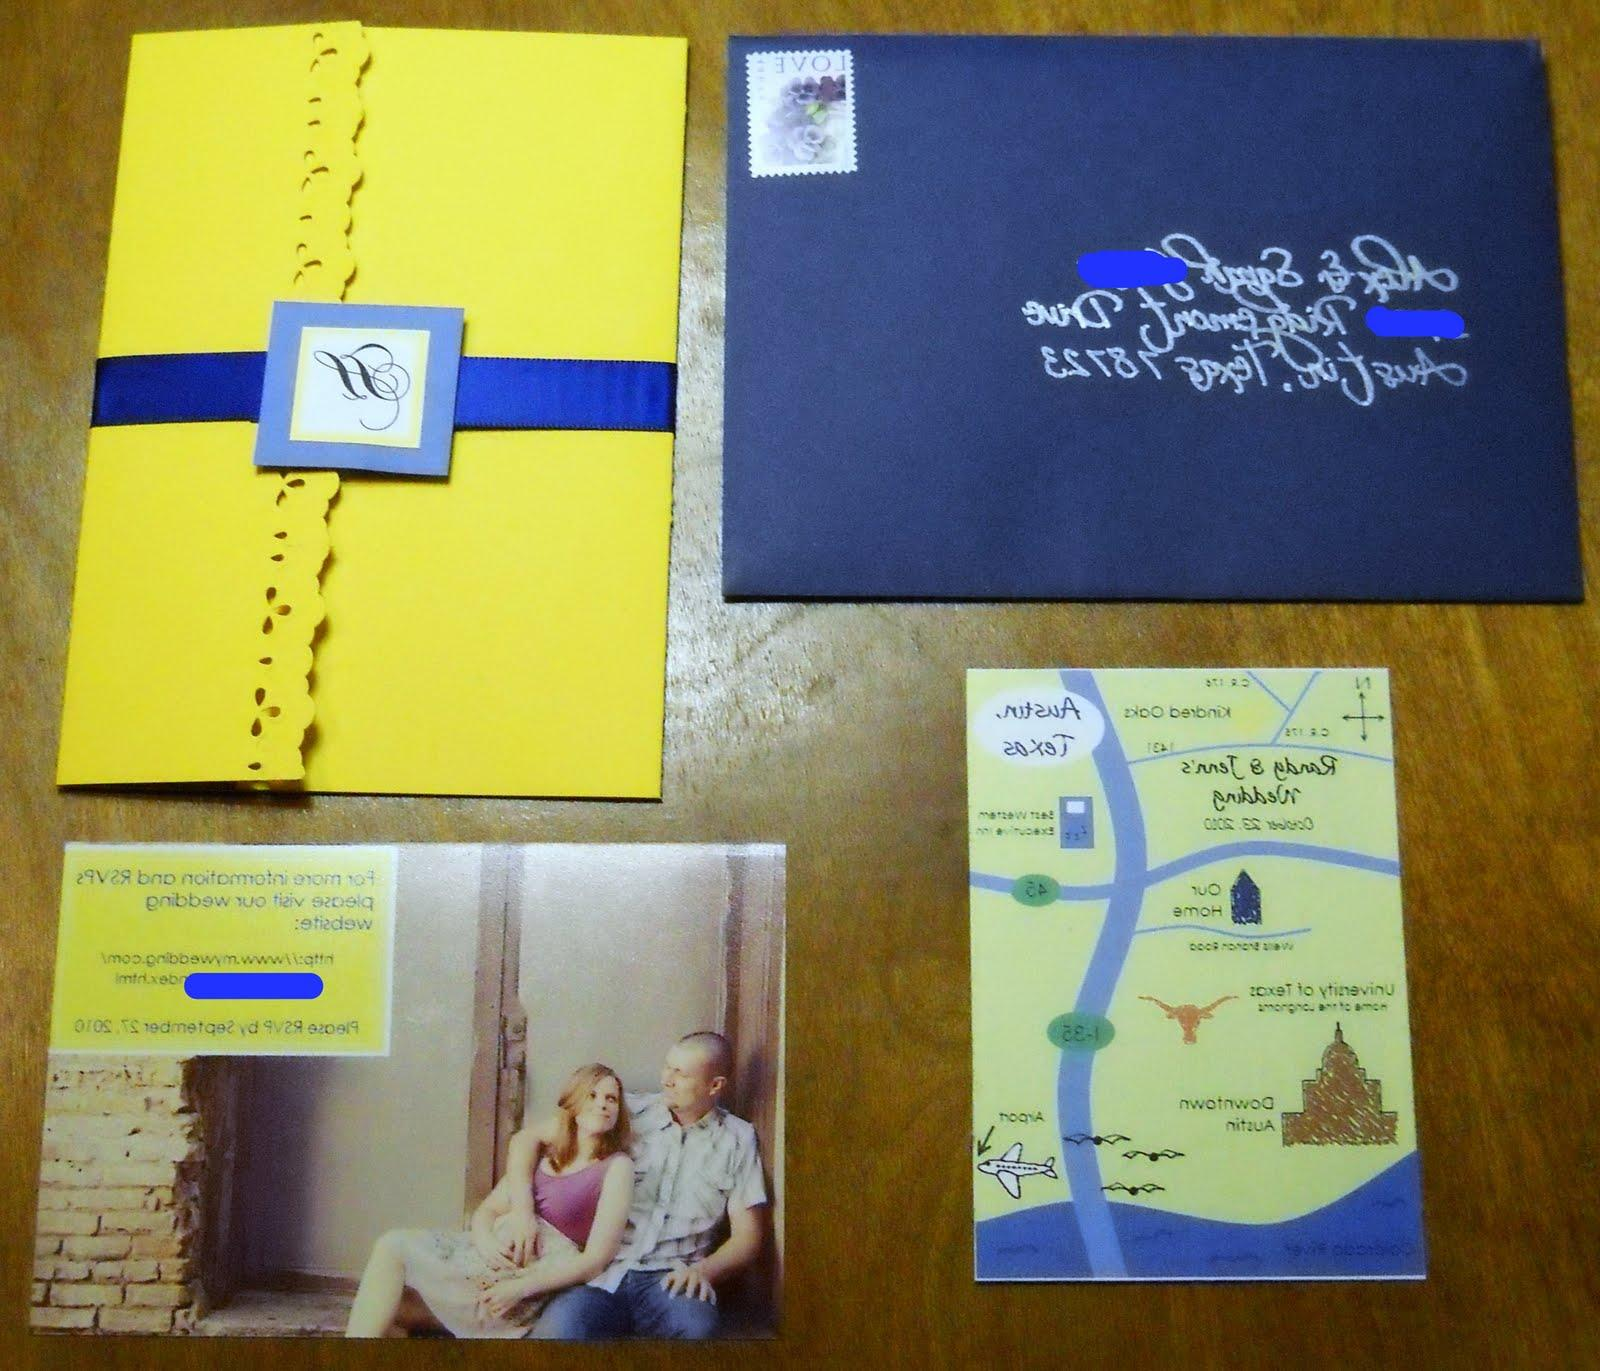 The map and RSVP card are